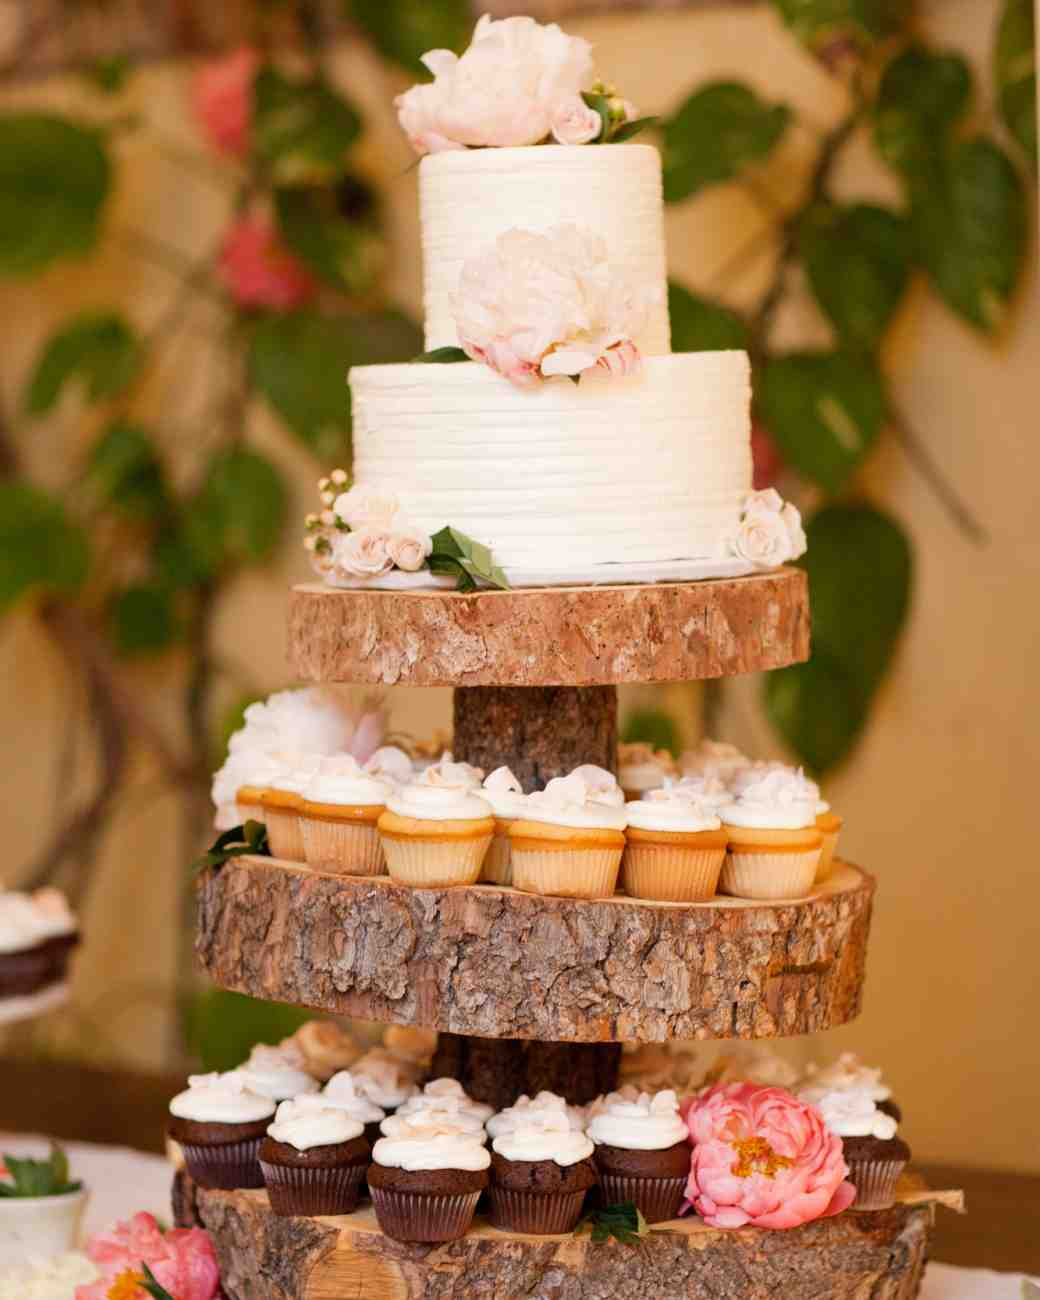 Country wedding cakes pictures - Confetti Style Wedding Cake With Wood